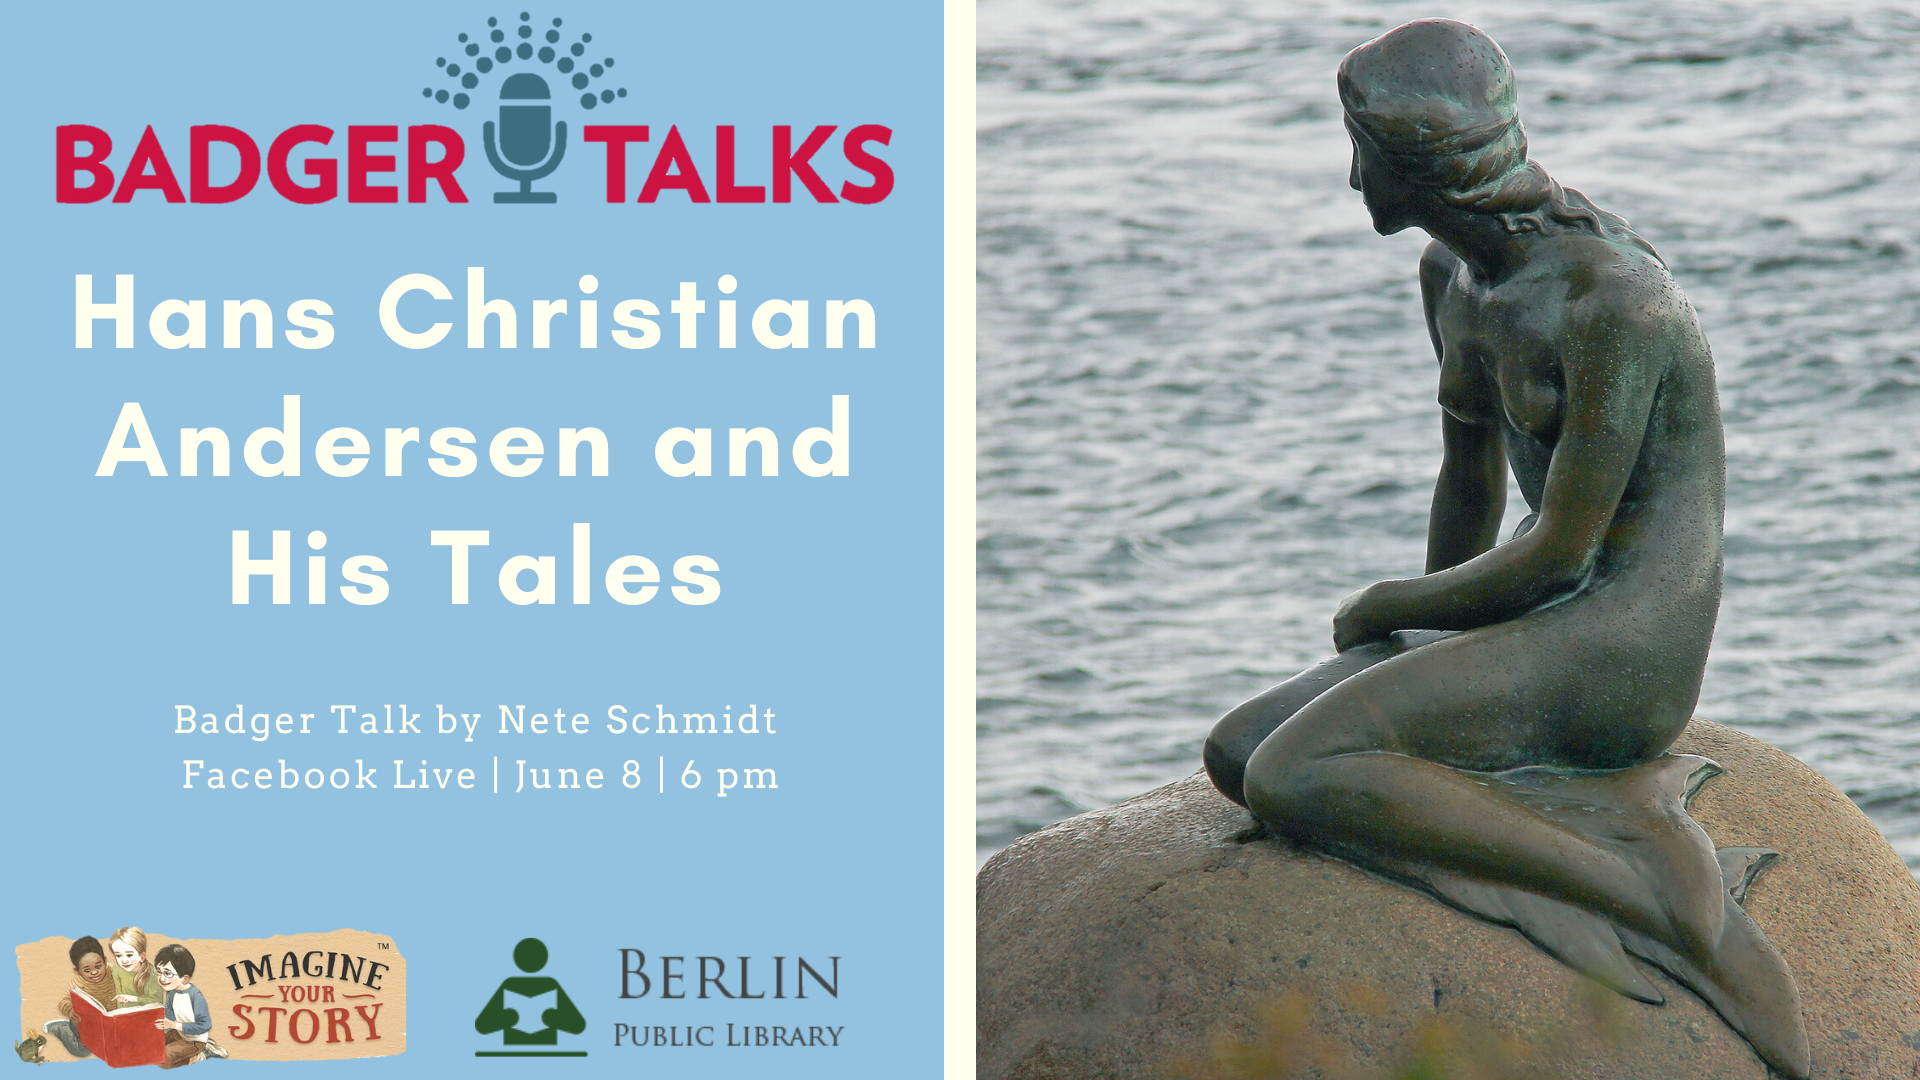 Hans Christian Andersen and His Tales